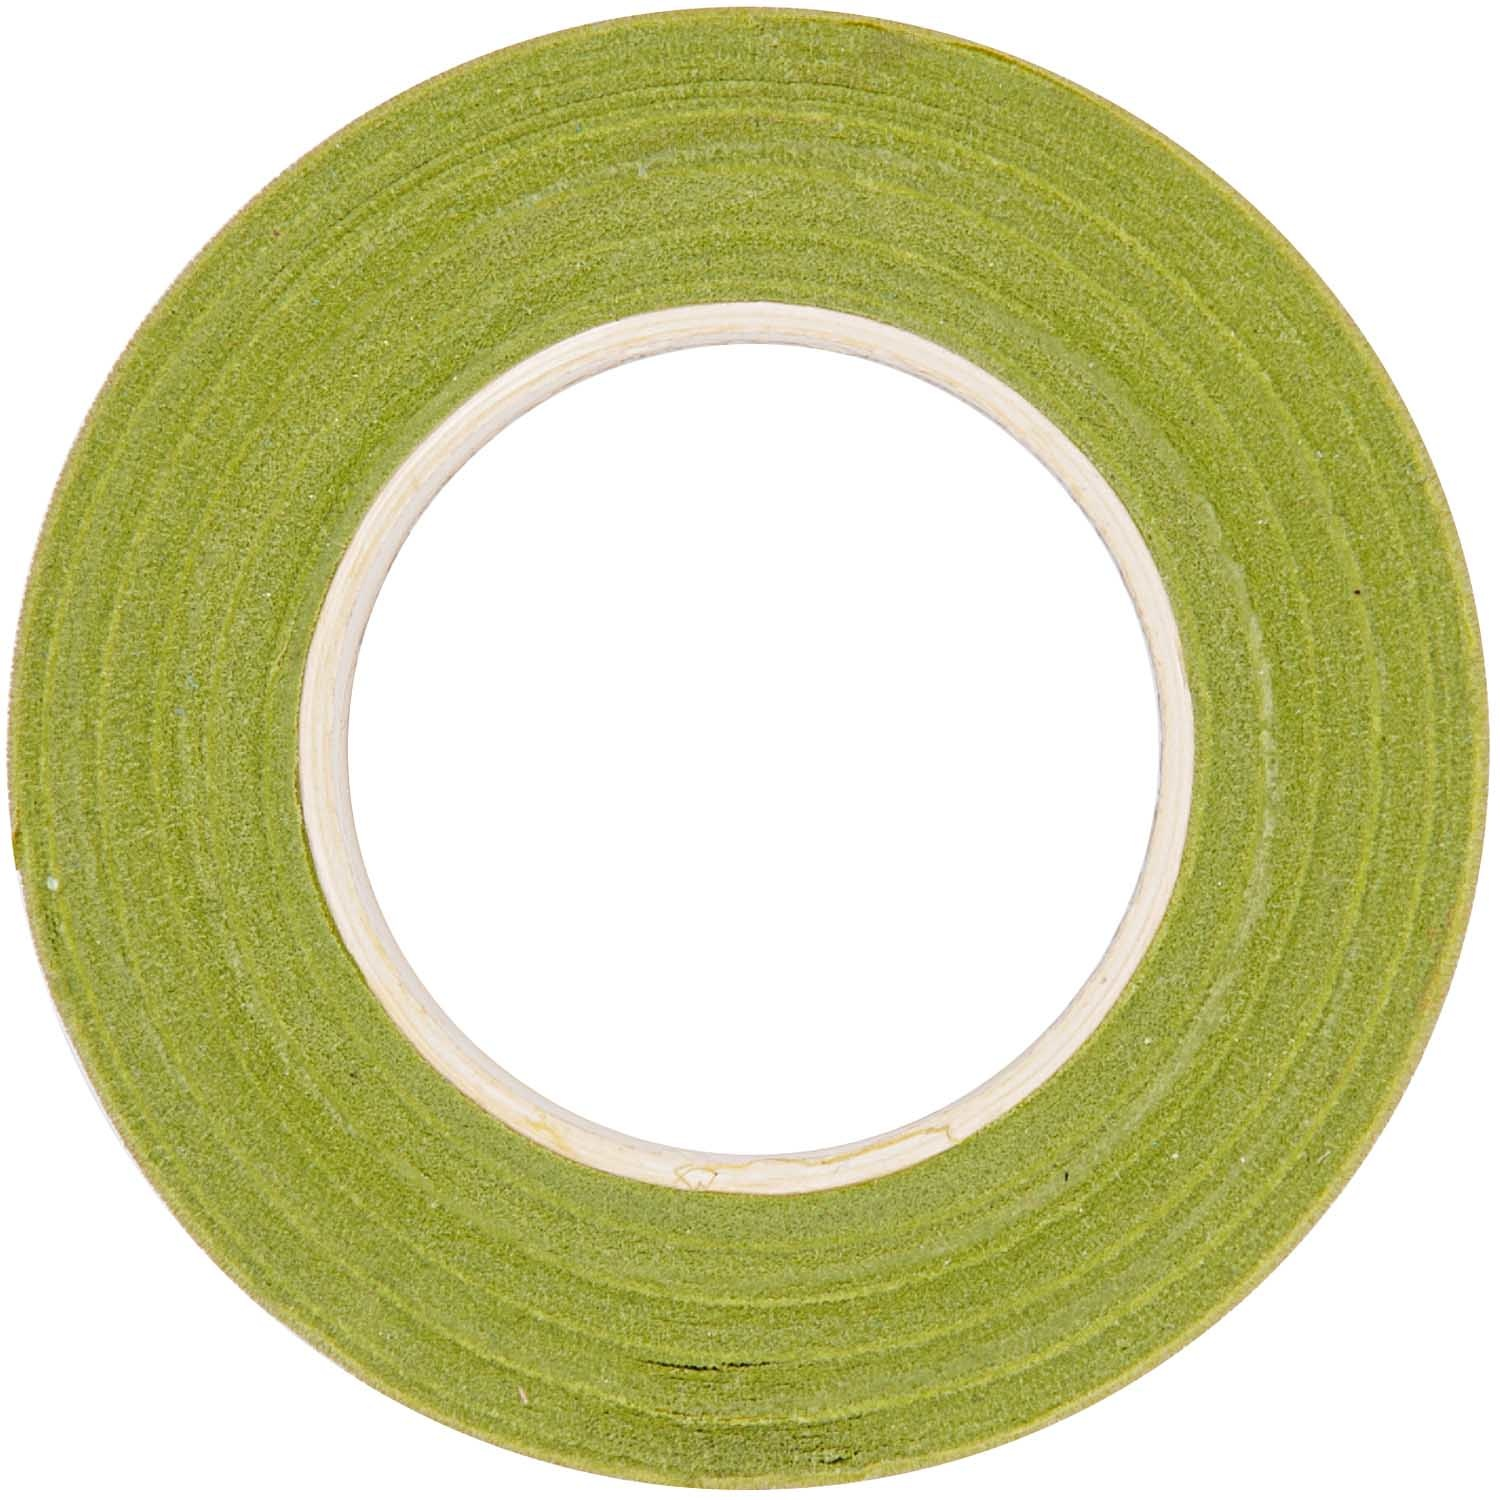 Rico NAY FLORAL CREPE TAPE, LIGHT GREEN 12 MM X 27,5 M